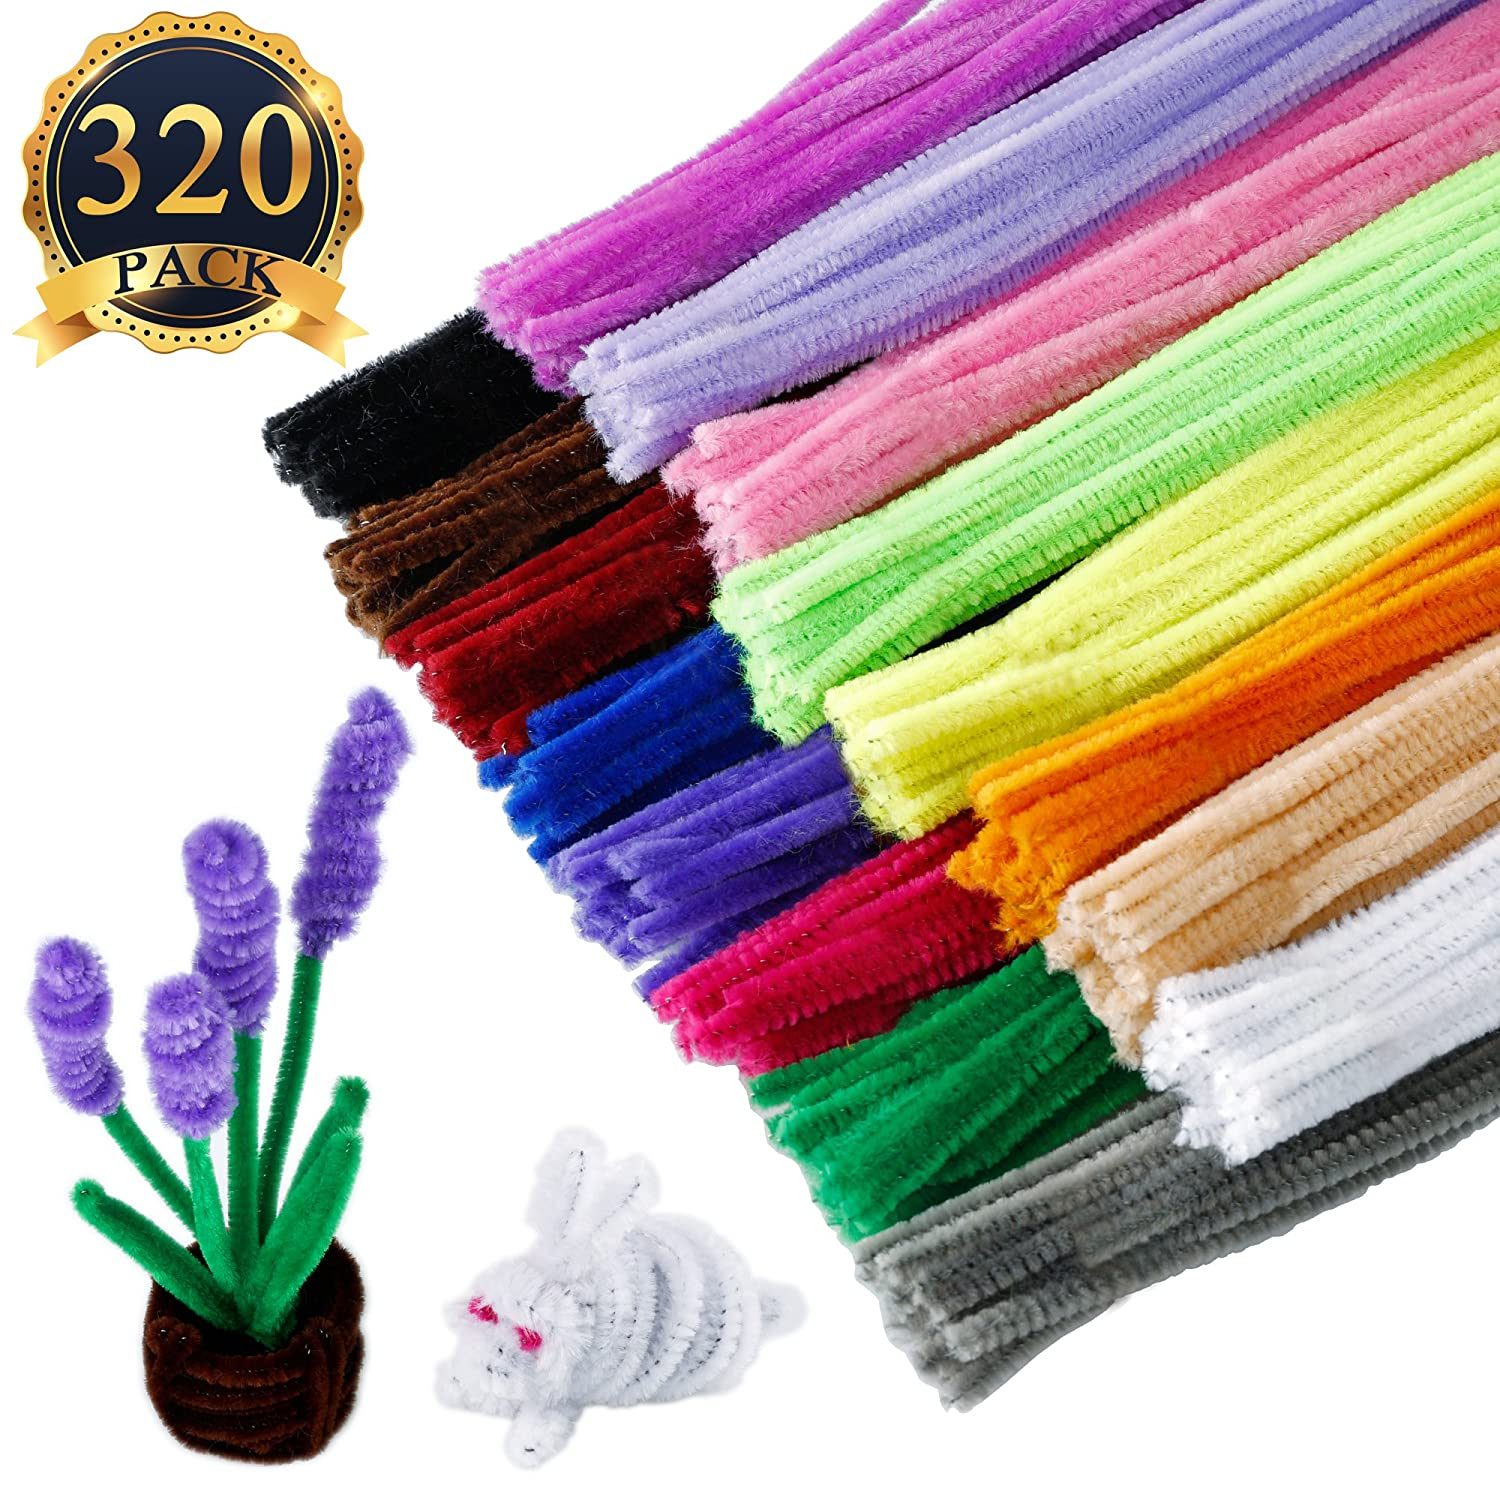 SUBANG 320 Count Pipe Cleaners Pipe Chenille Stem 6 mm x 12 Inch, 16 Colors Available